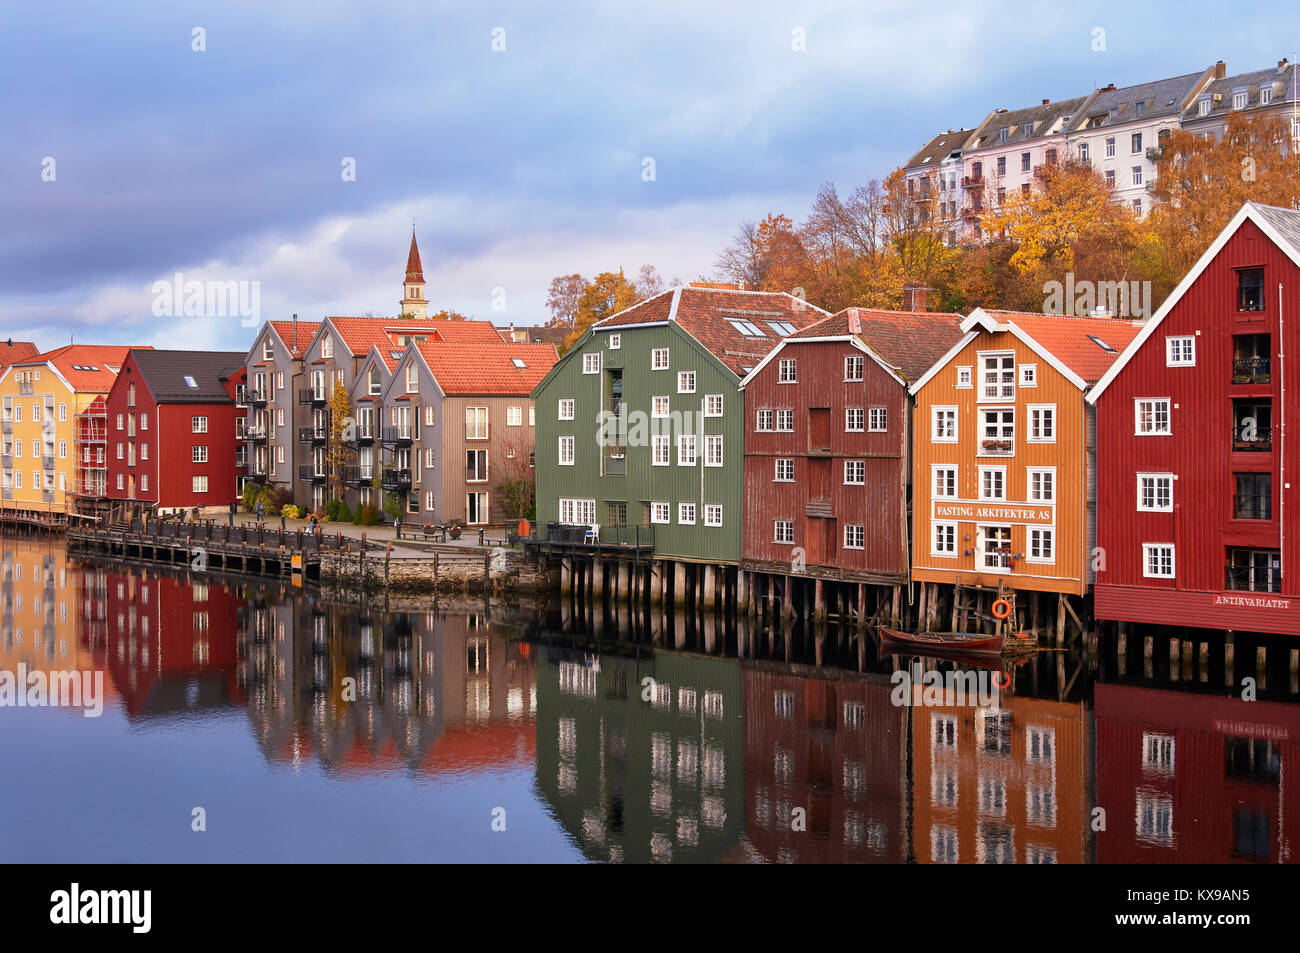 Restored and converted storehouses along the River Nidelva, Trondheim, Sor-Trondelag, Norway - Stock Image